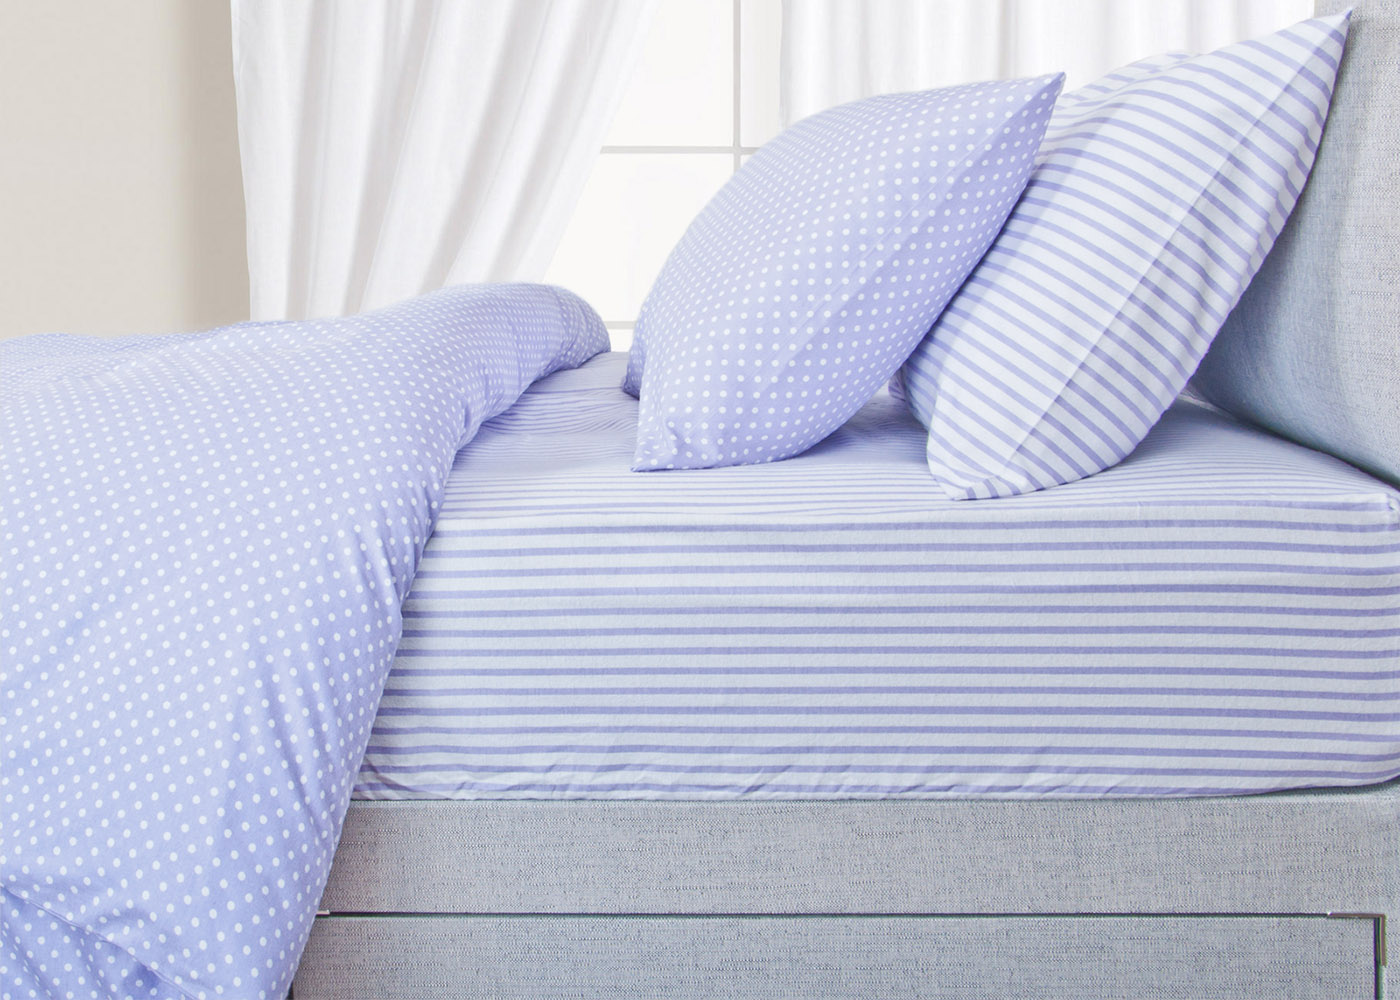 Helena Springfield 100% Brushed Cotton Bedding in Lilac and Blue